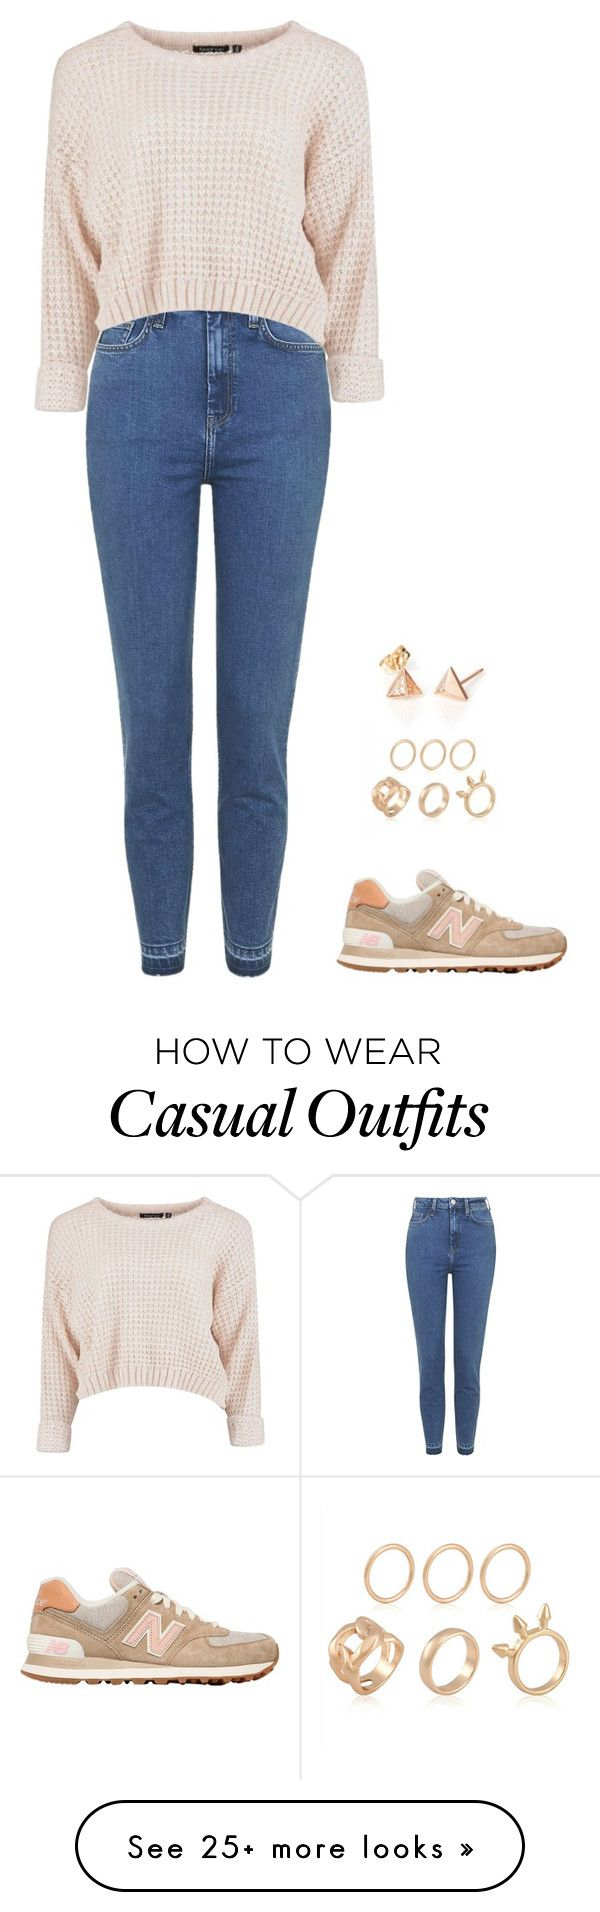 """""""Casual Outfit"""" by mayalexia on Polyvore featuring New Balance, Topshop, women's clothing, women's fashion, women, female, woman, misses and juniors"""